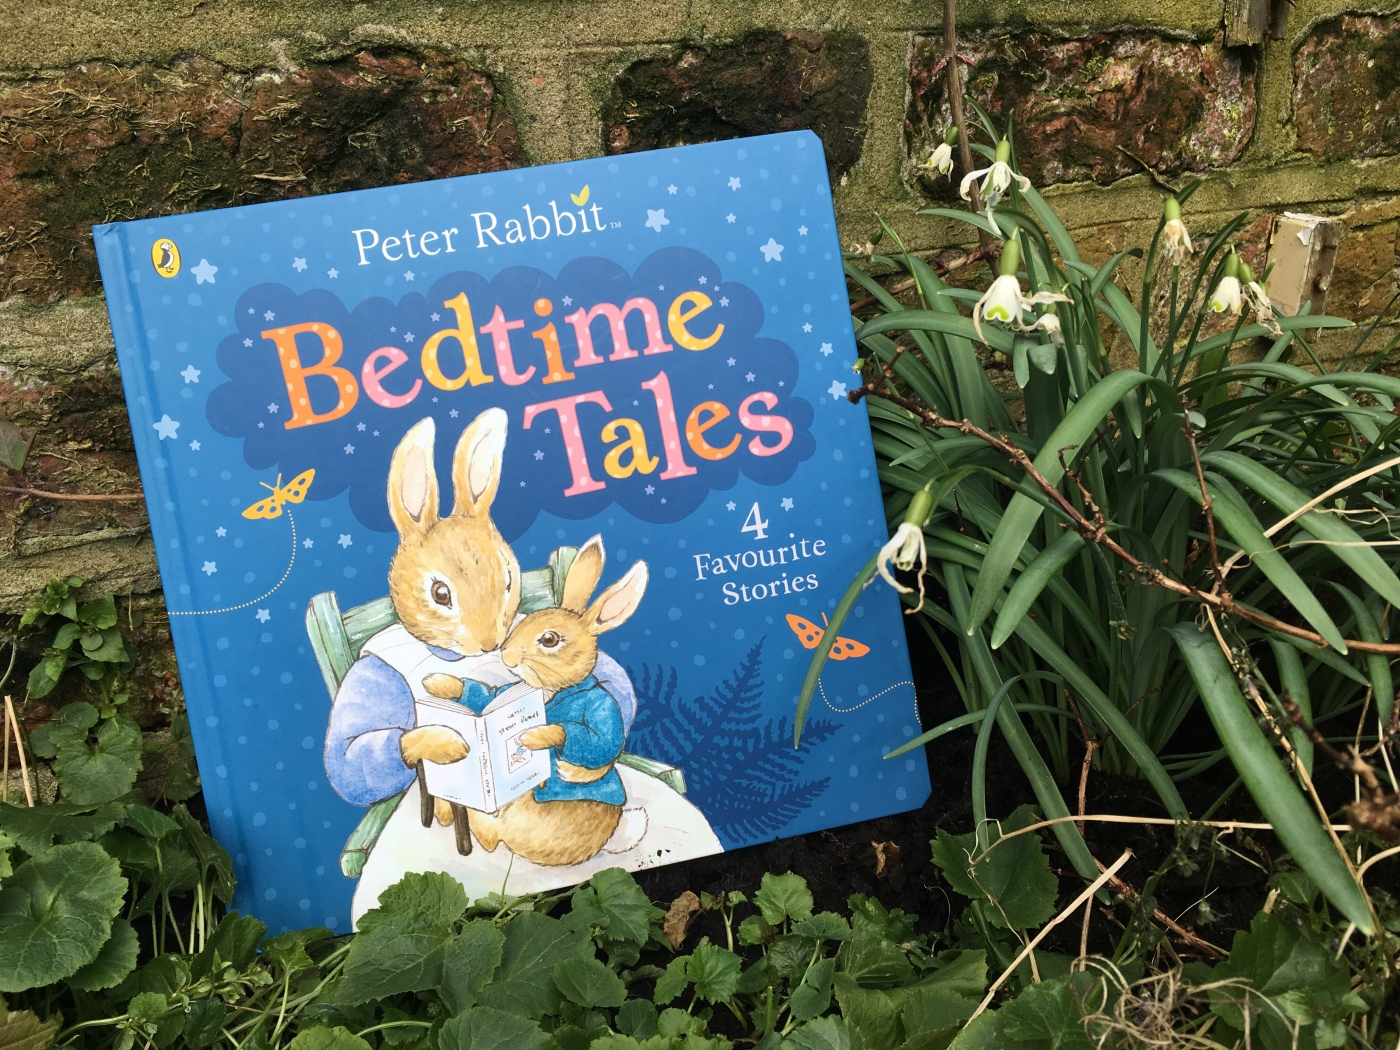 Peter Rabbit Bedtime Tales by Beatrix Potter